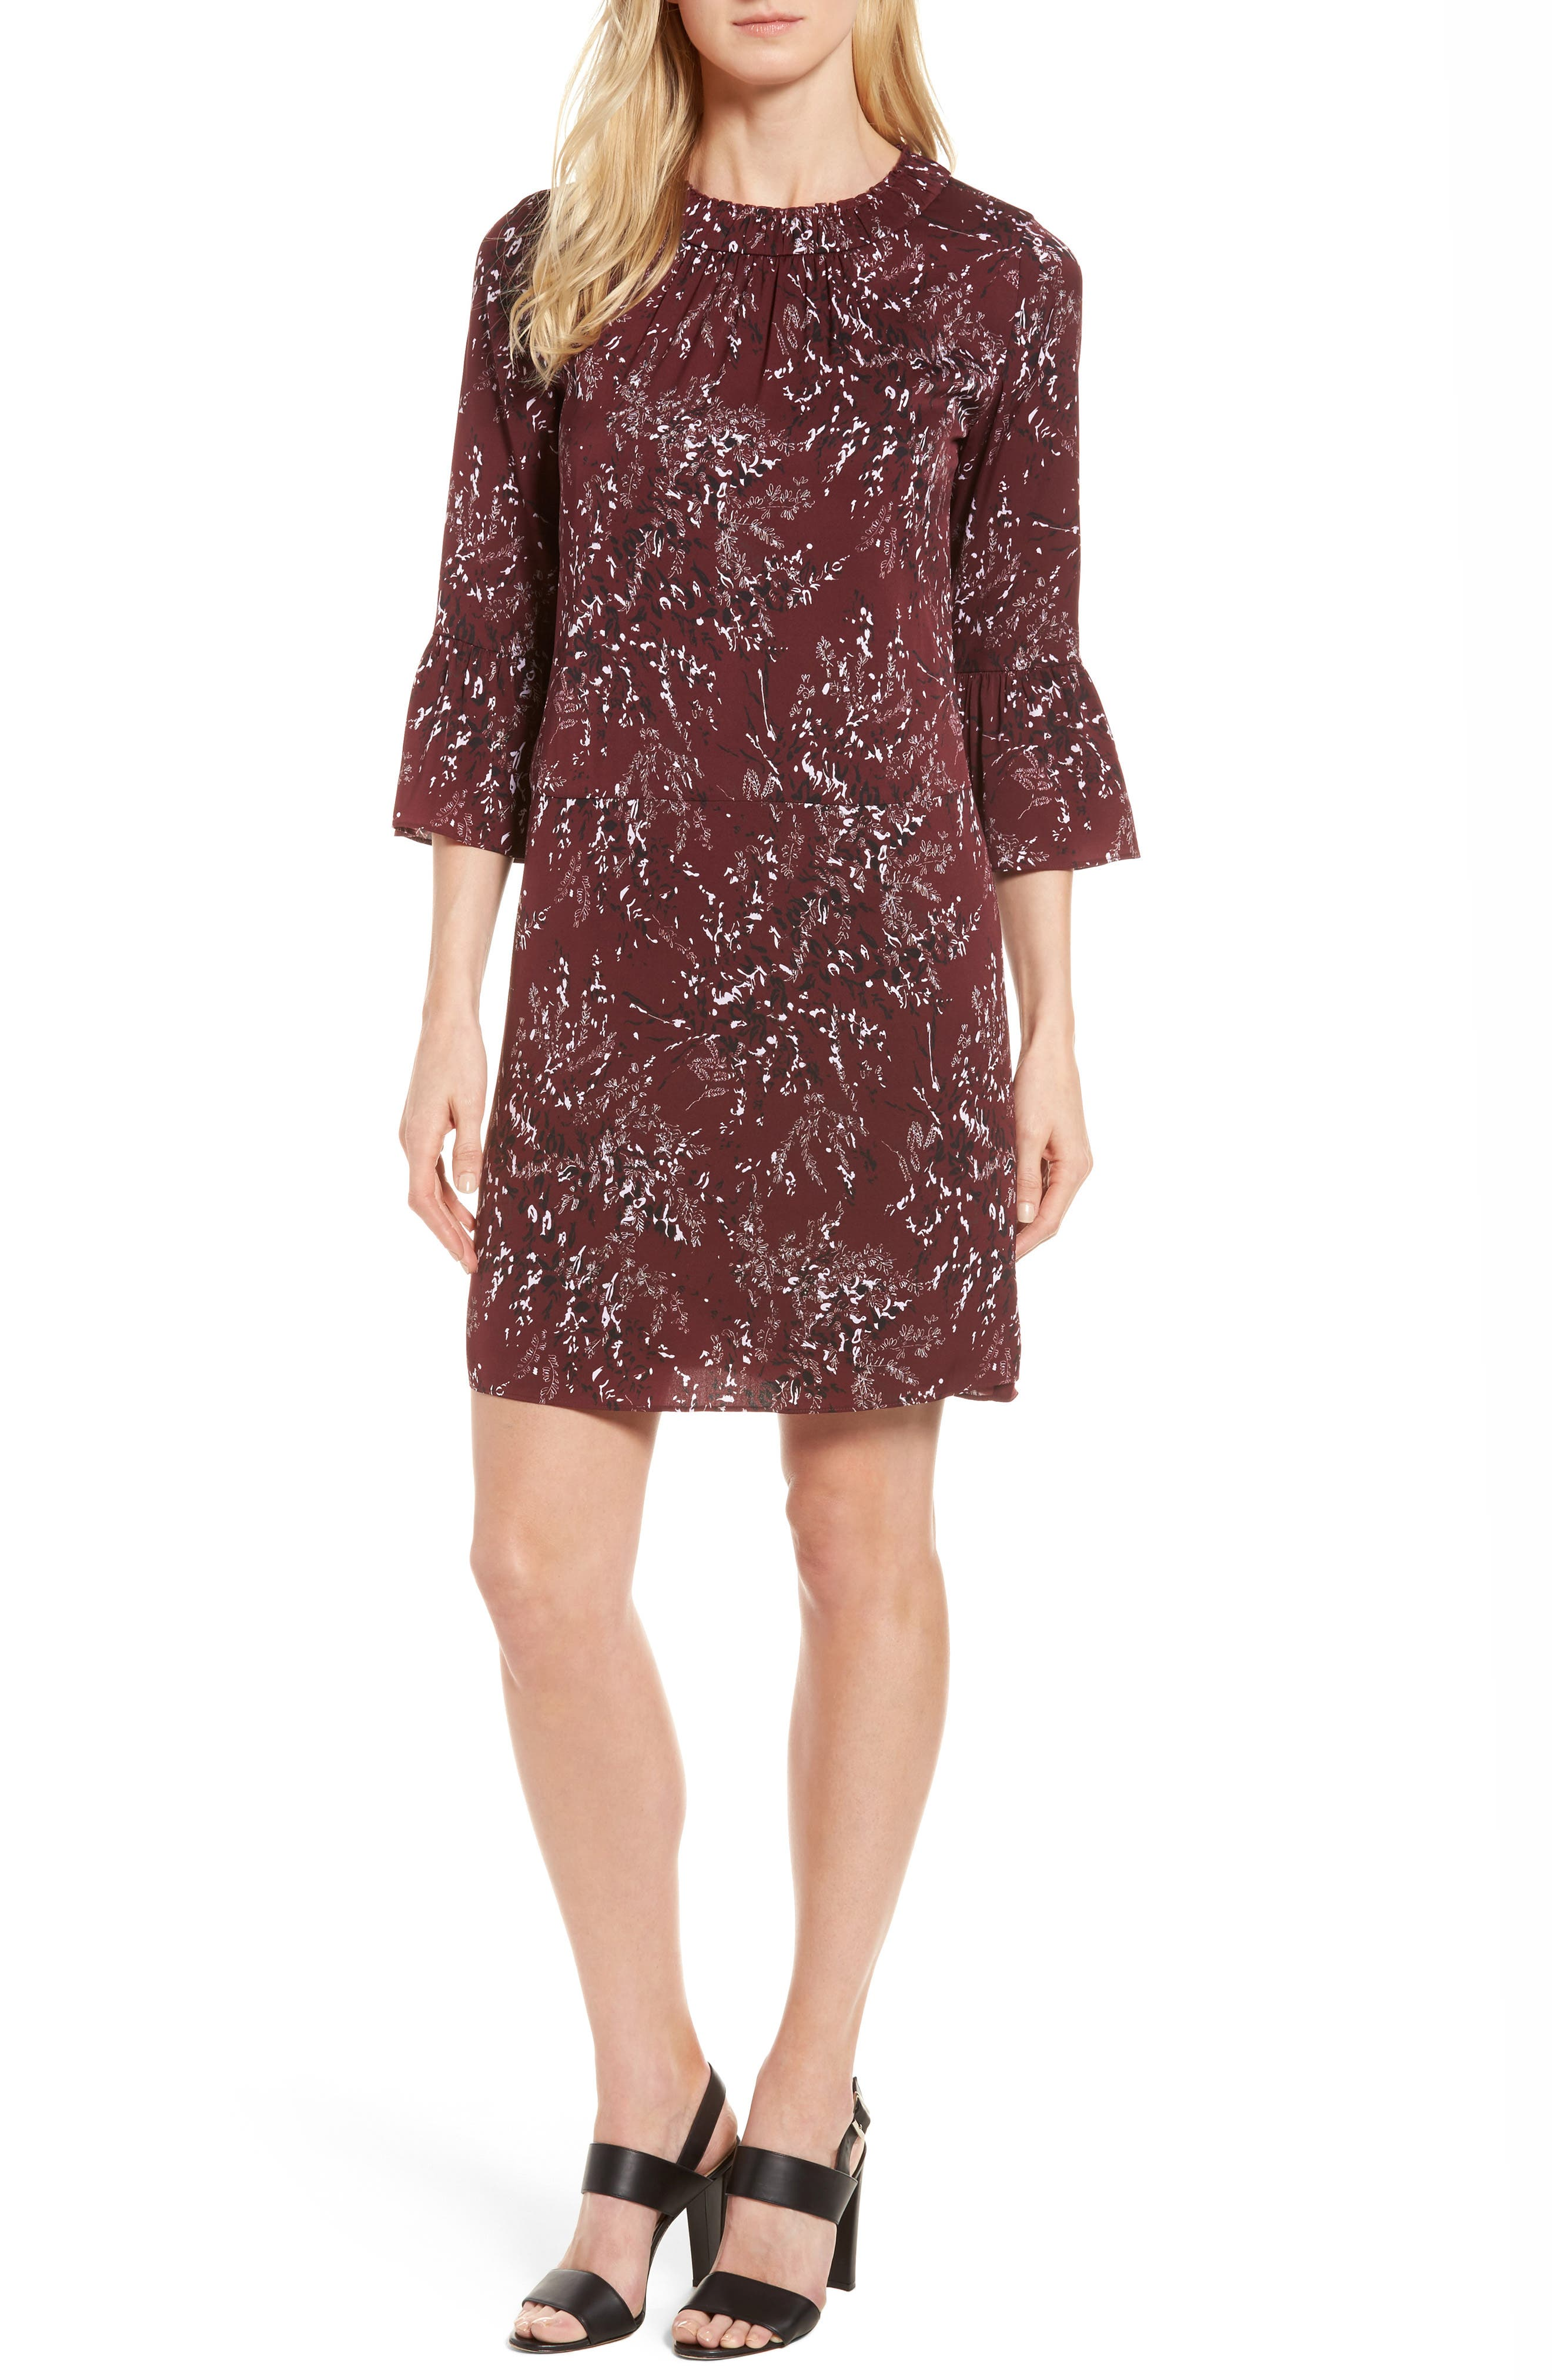 Nordstrom Signature Floral Print Stretch Silk Minidress